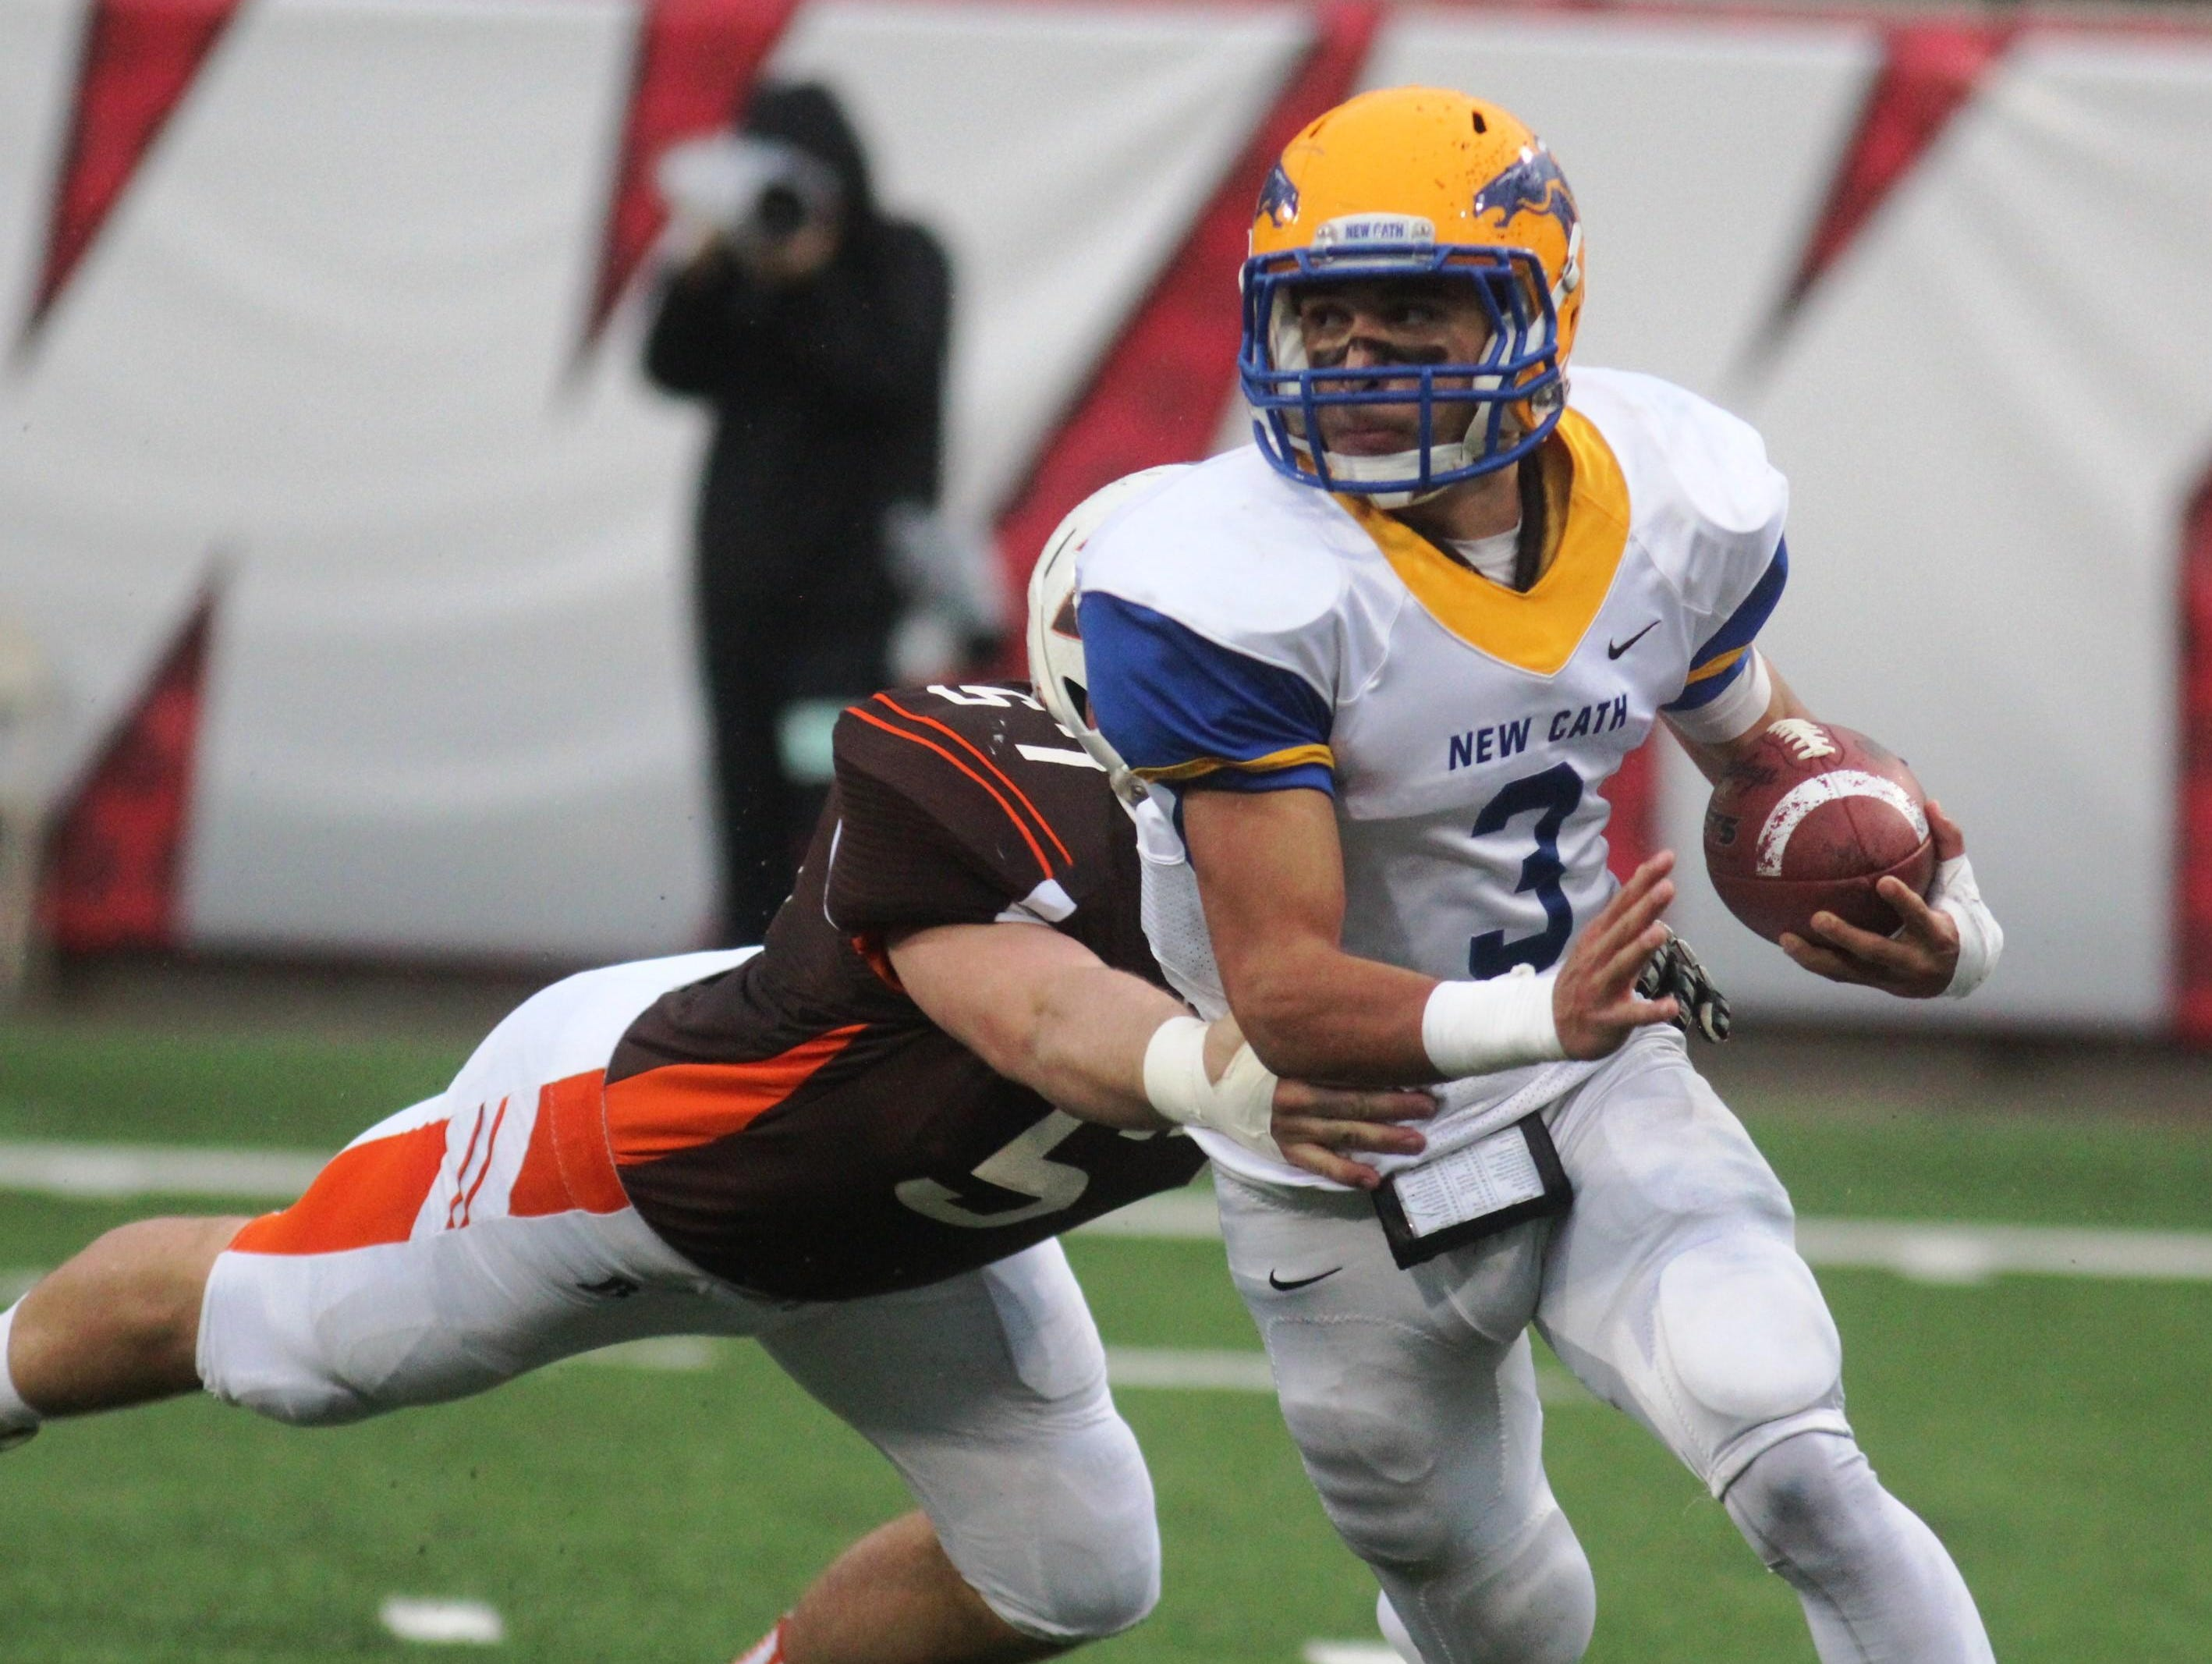 Newport Central Catholic's Jacob Smith carries the ball in last season's 2A state championship game.